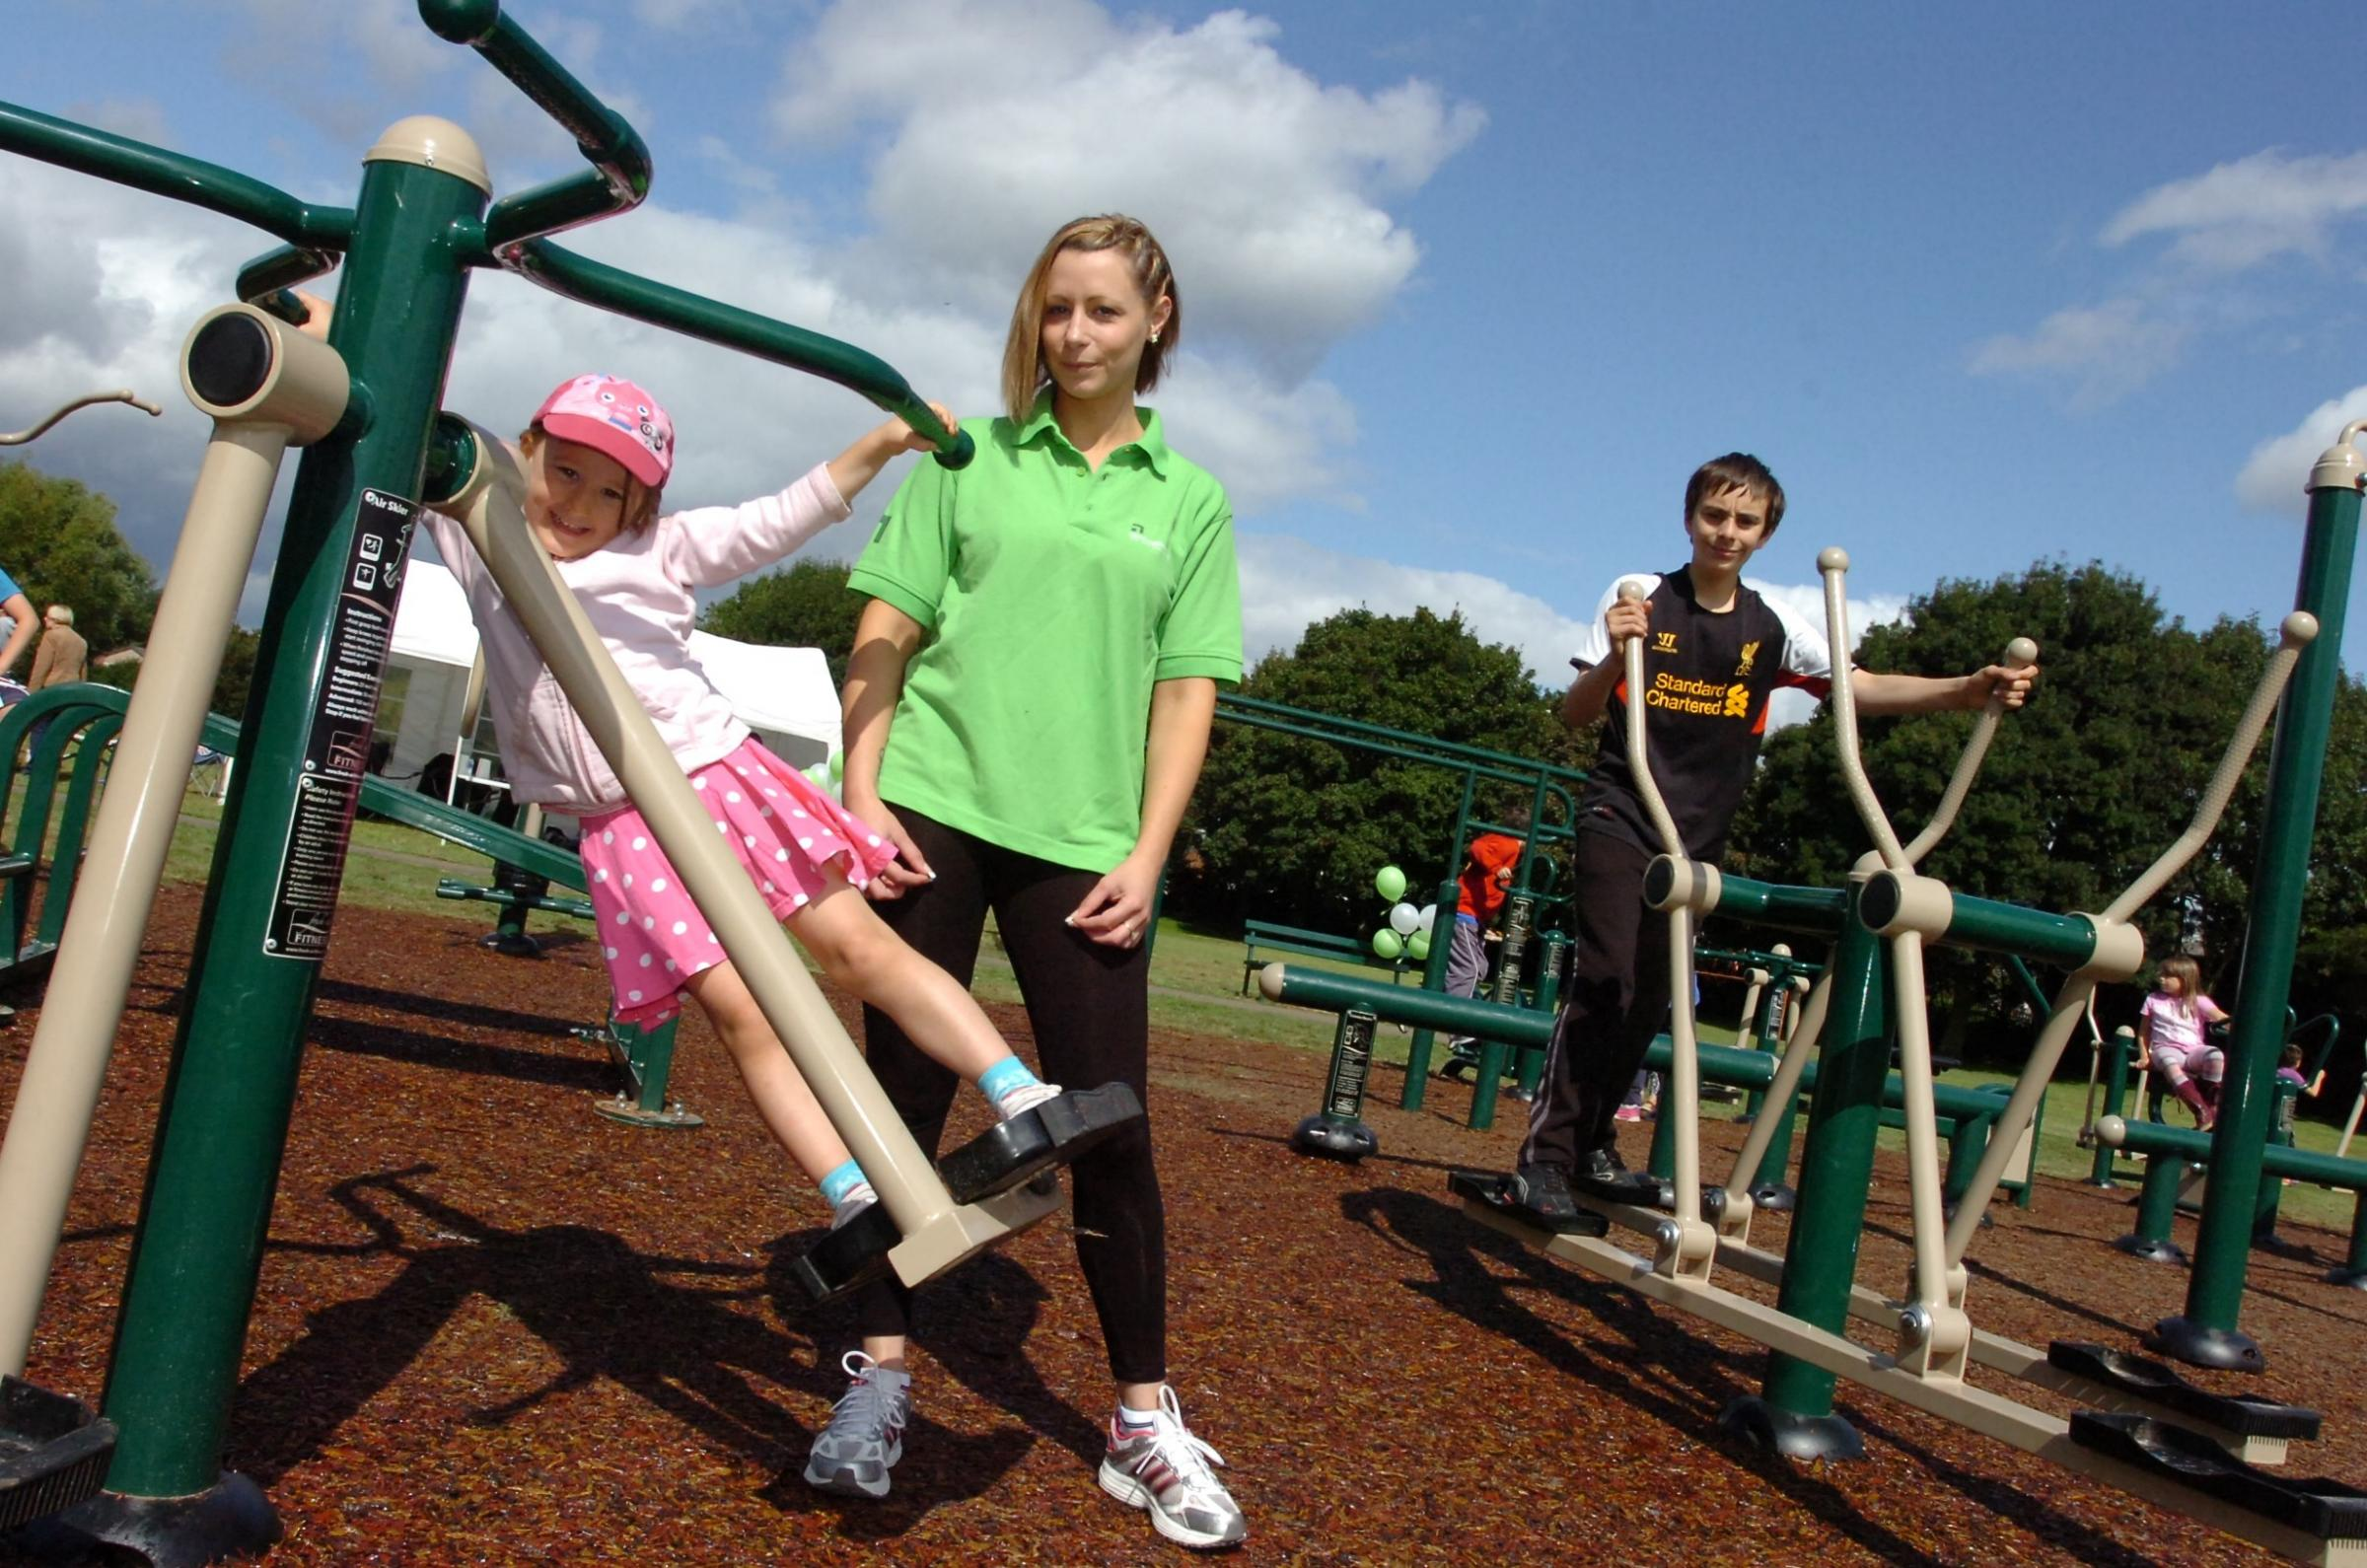 Outdoor gym in Hereford unveiled